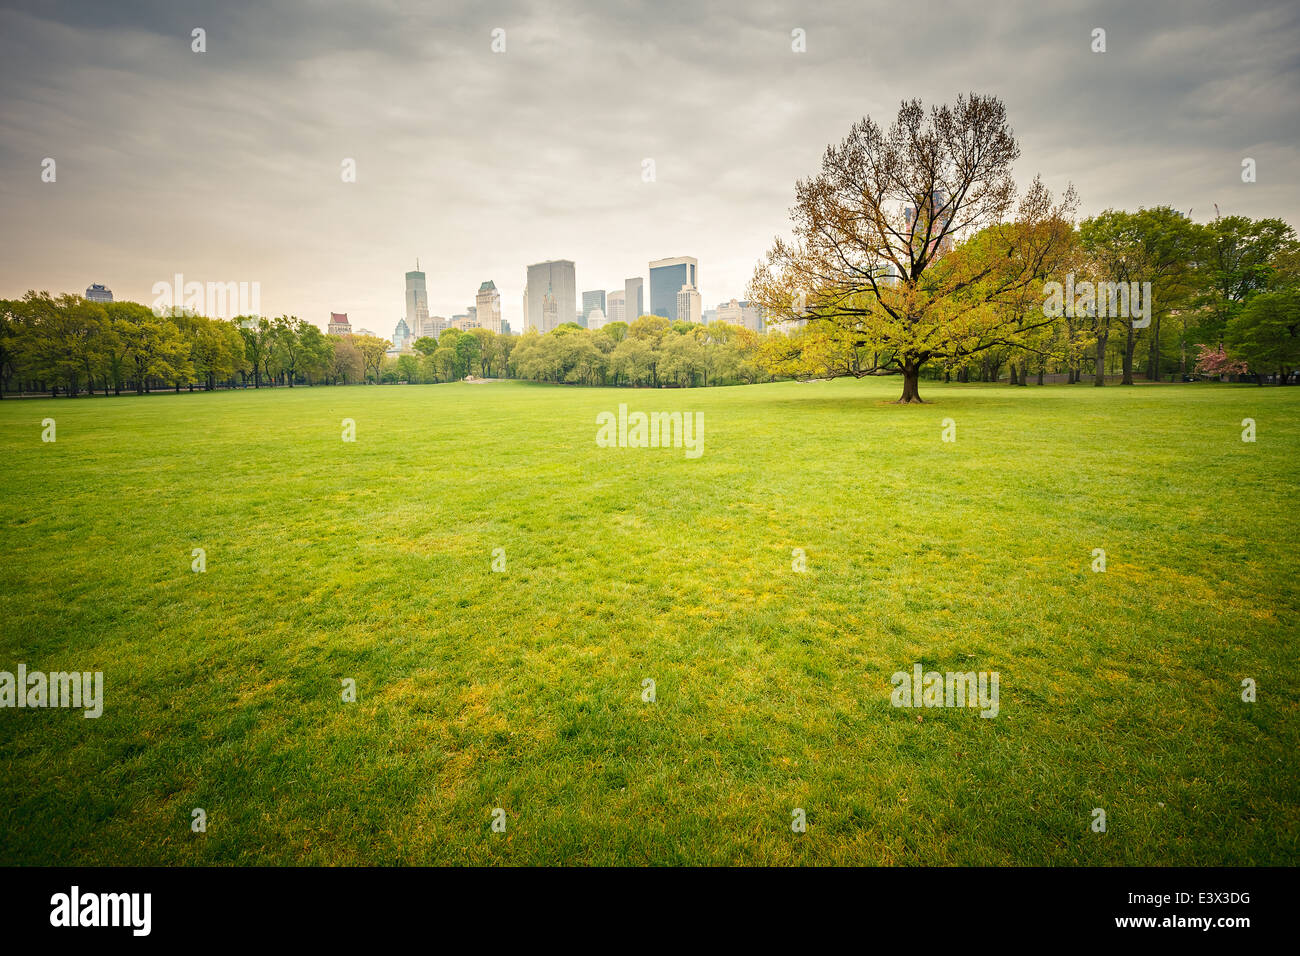 Central park at rainy day - Stock Image